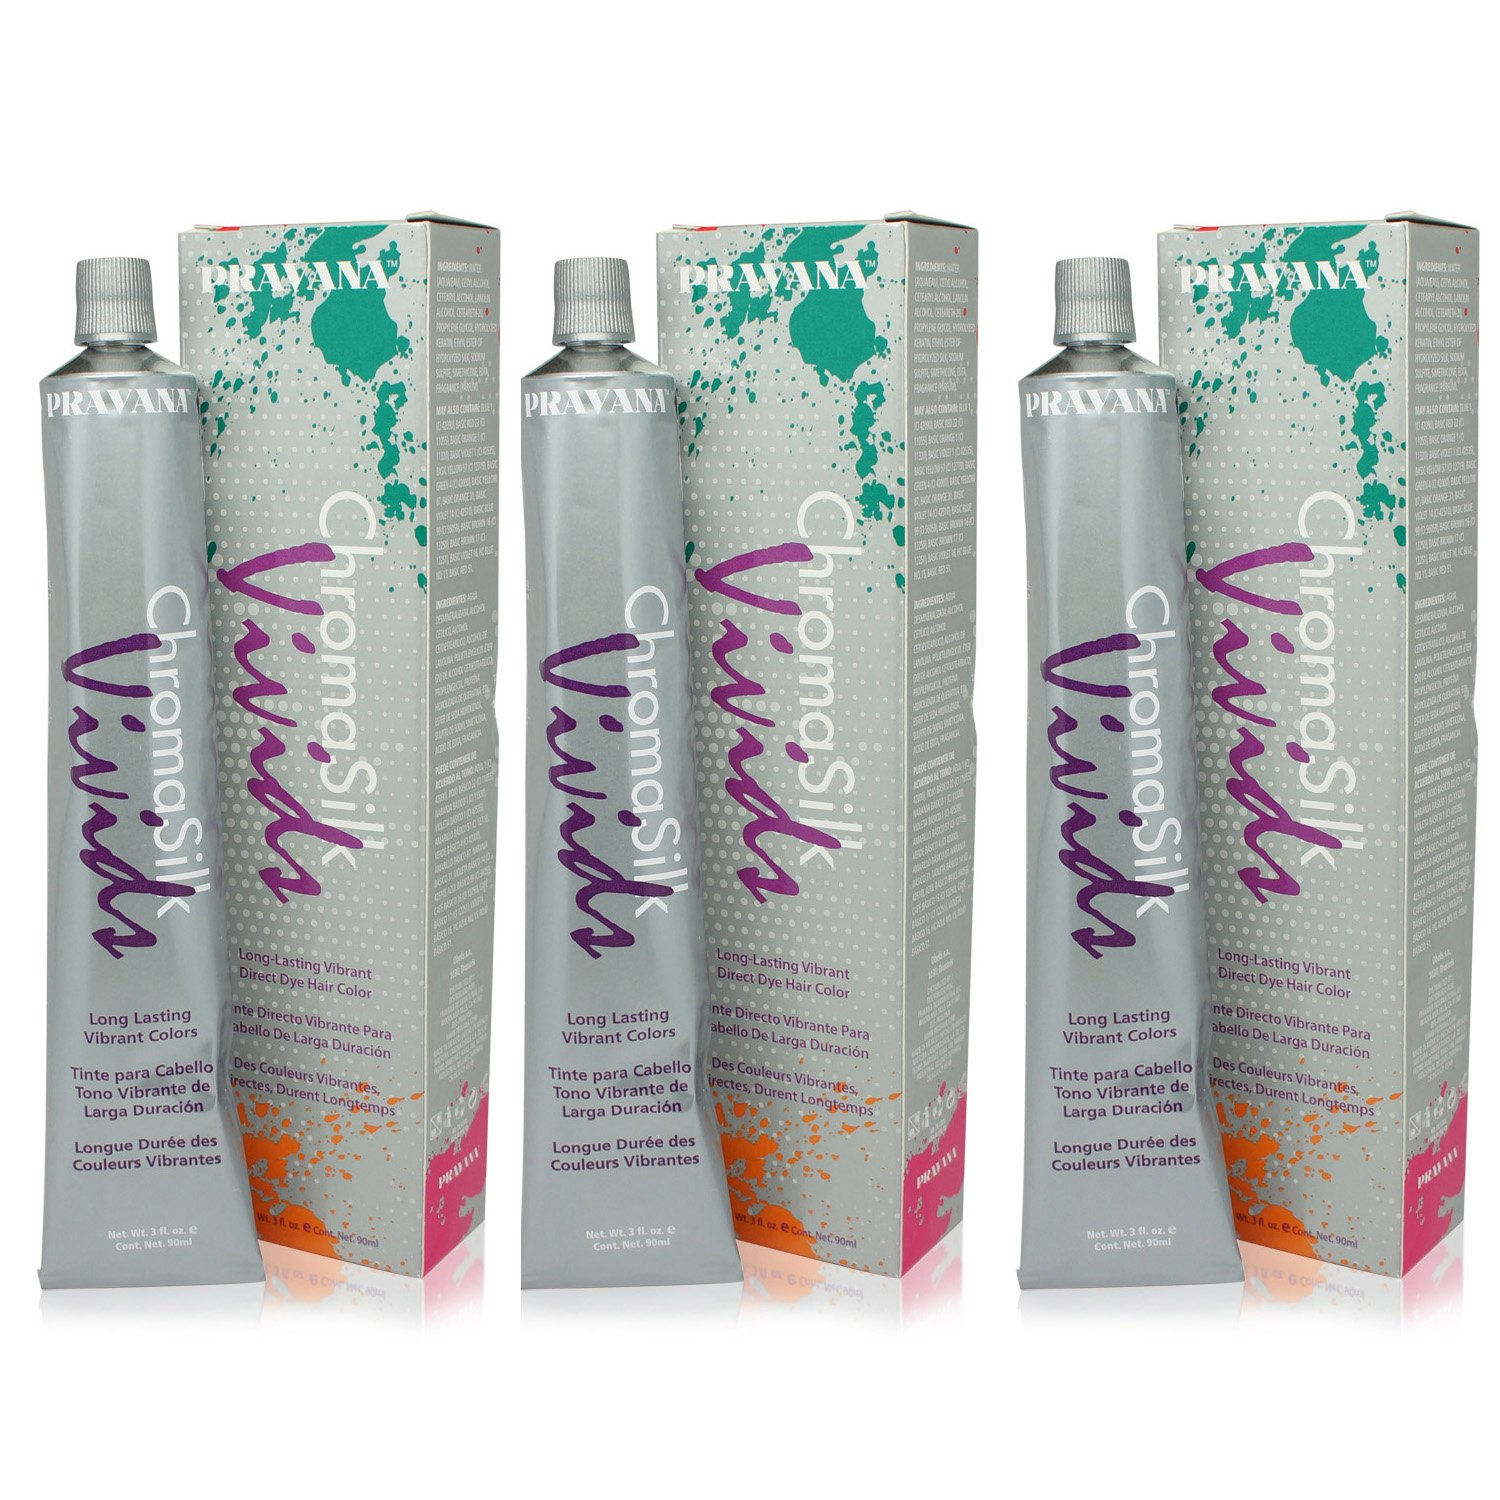 PRAVANA ChromaSilk Vivids Creme Hair Color with Silk & Keratin Protein (Wild Orchids)3 fl Oz-3 pack by Pravana